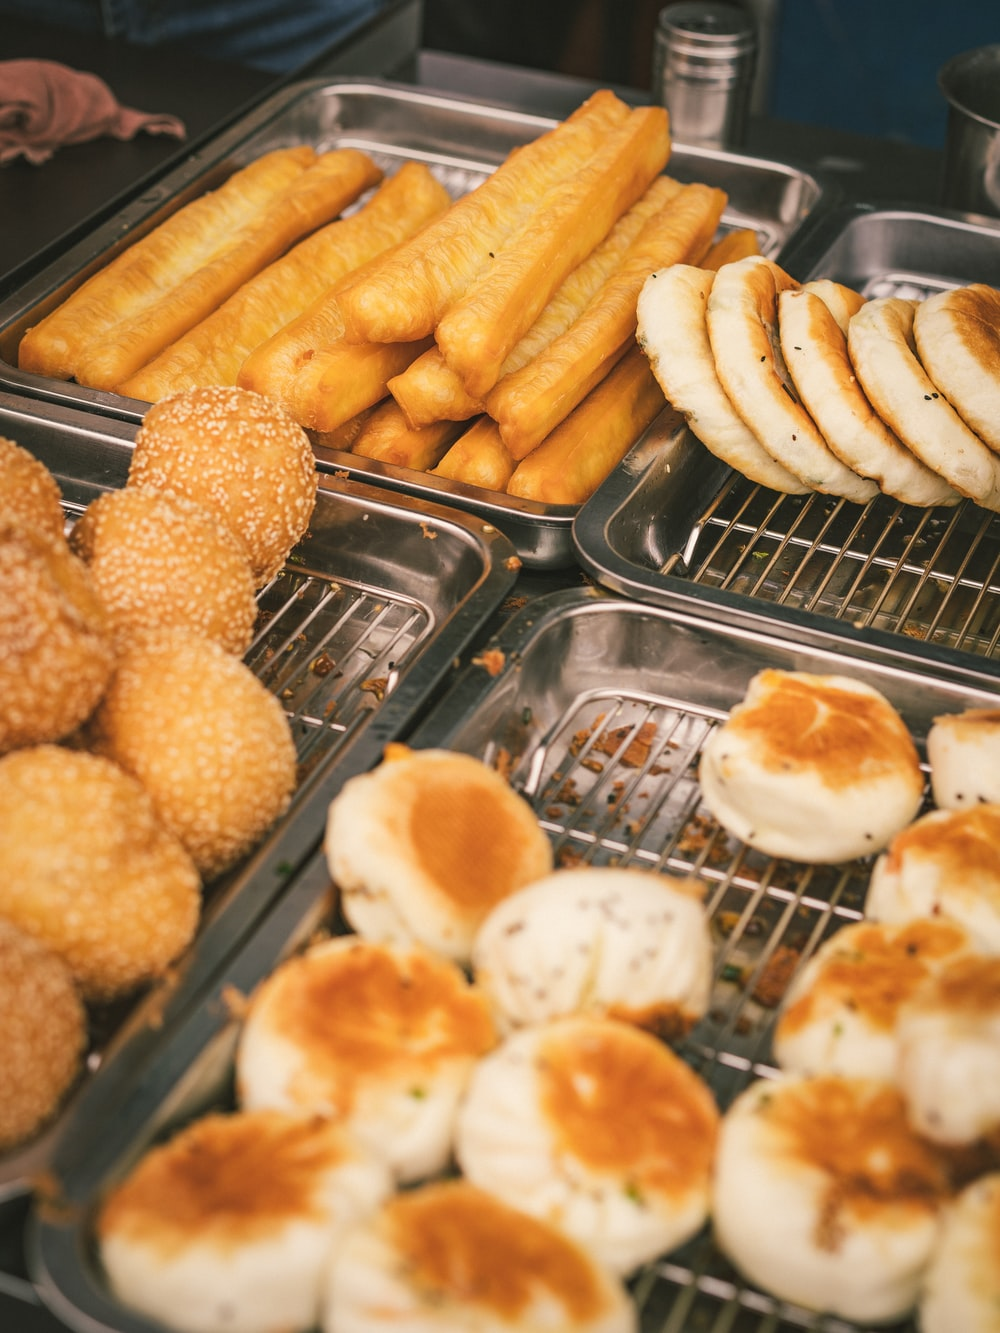 fried food on stainless steel tray